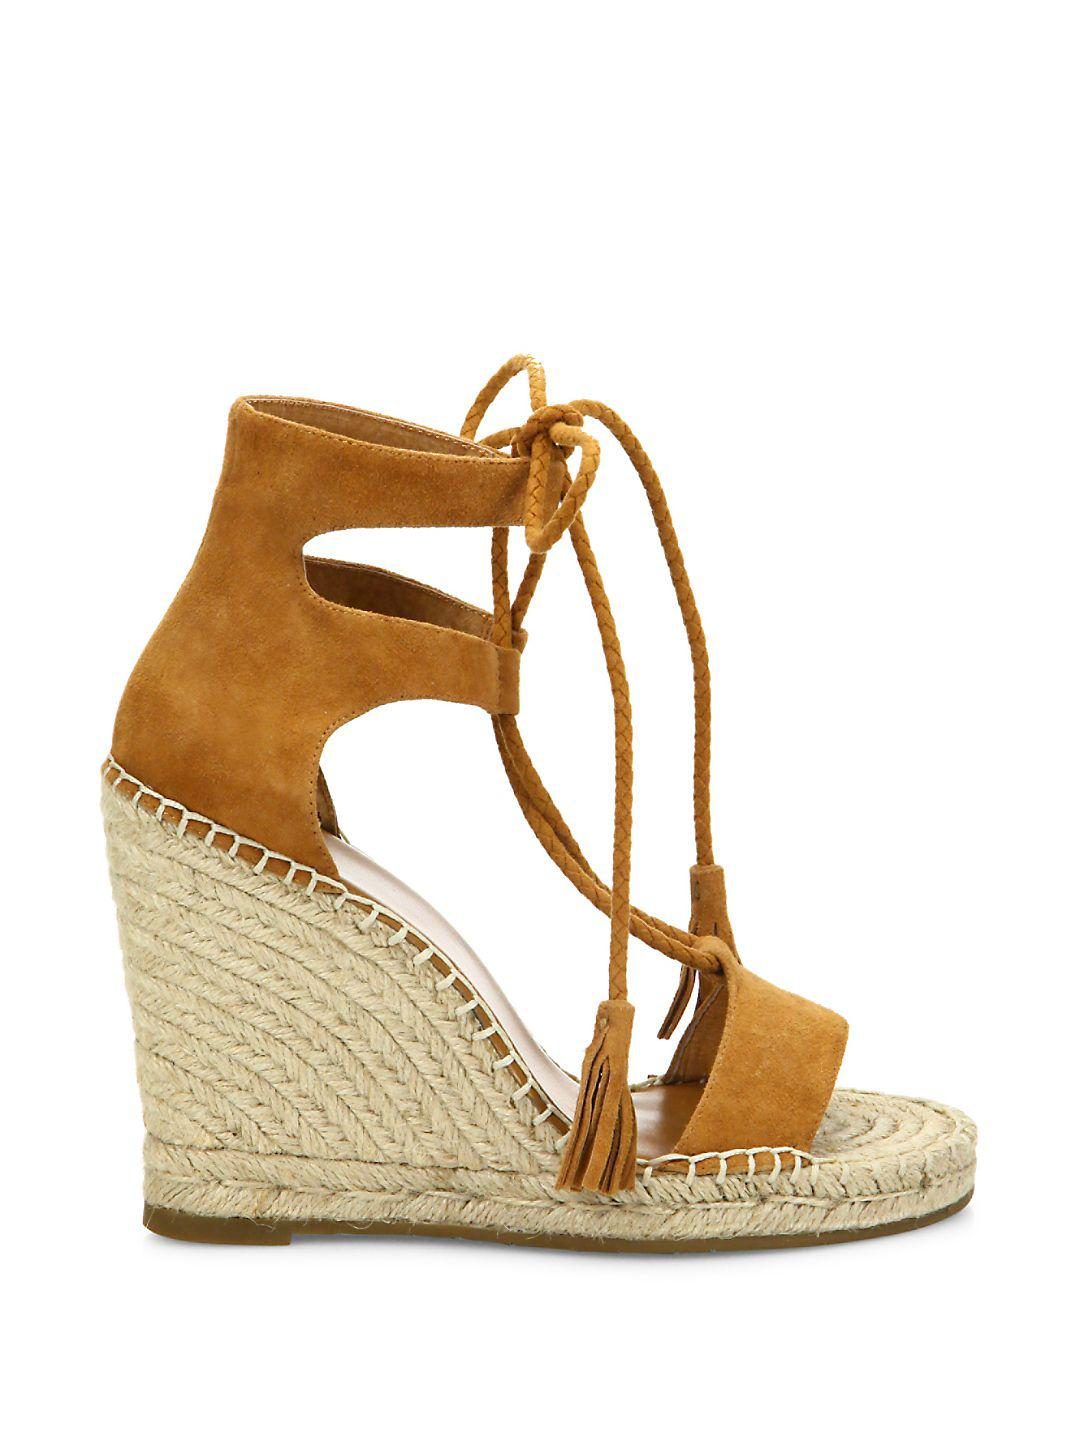 c91e0883583 Lyst - Joie Delilah Lace-up Suede Espadrille Wedge Sandals